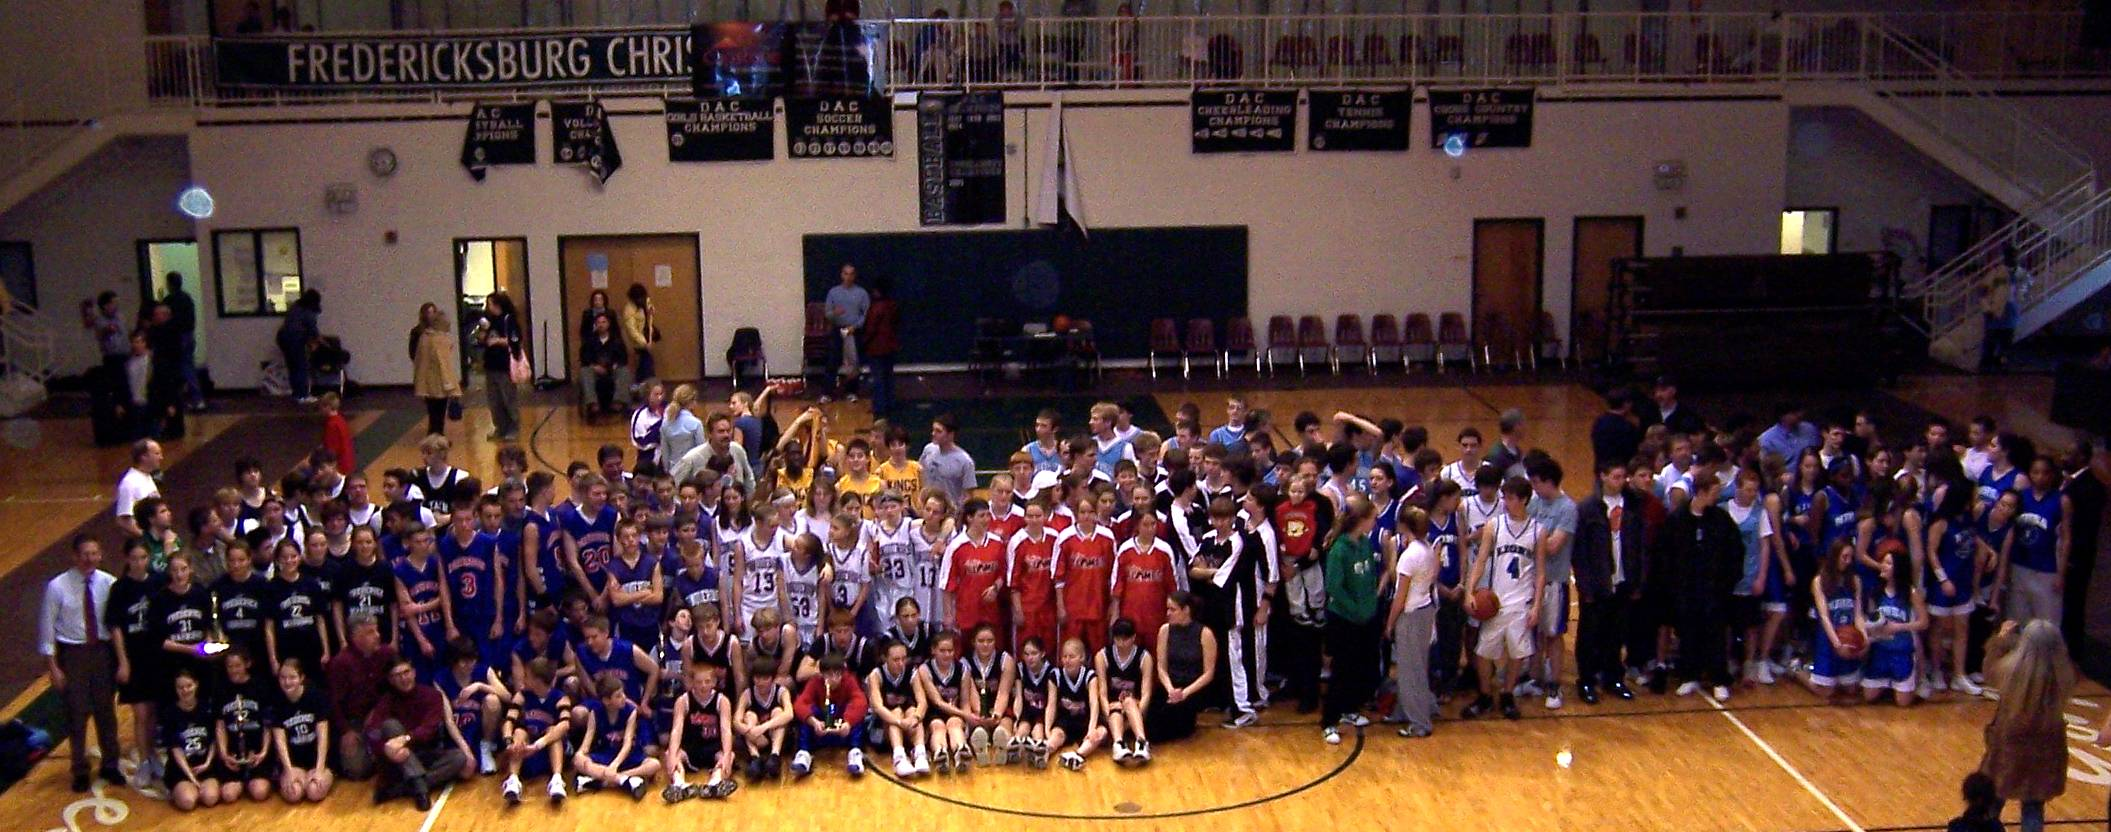 2005 Virginia Basketball Tournament